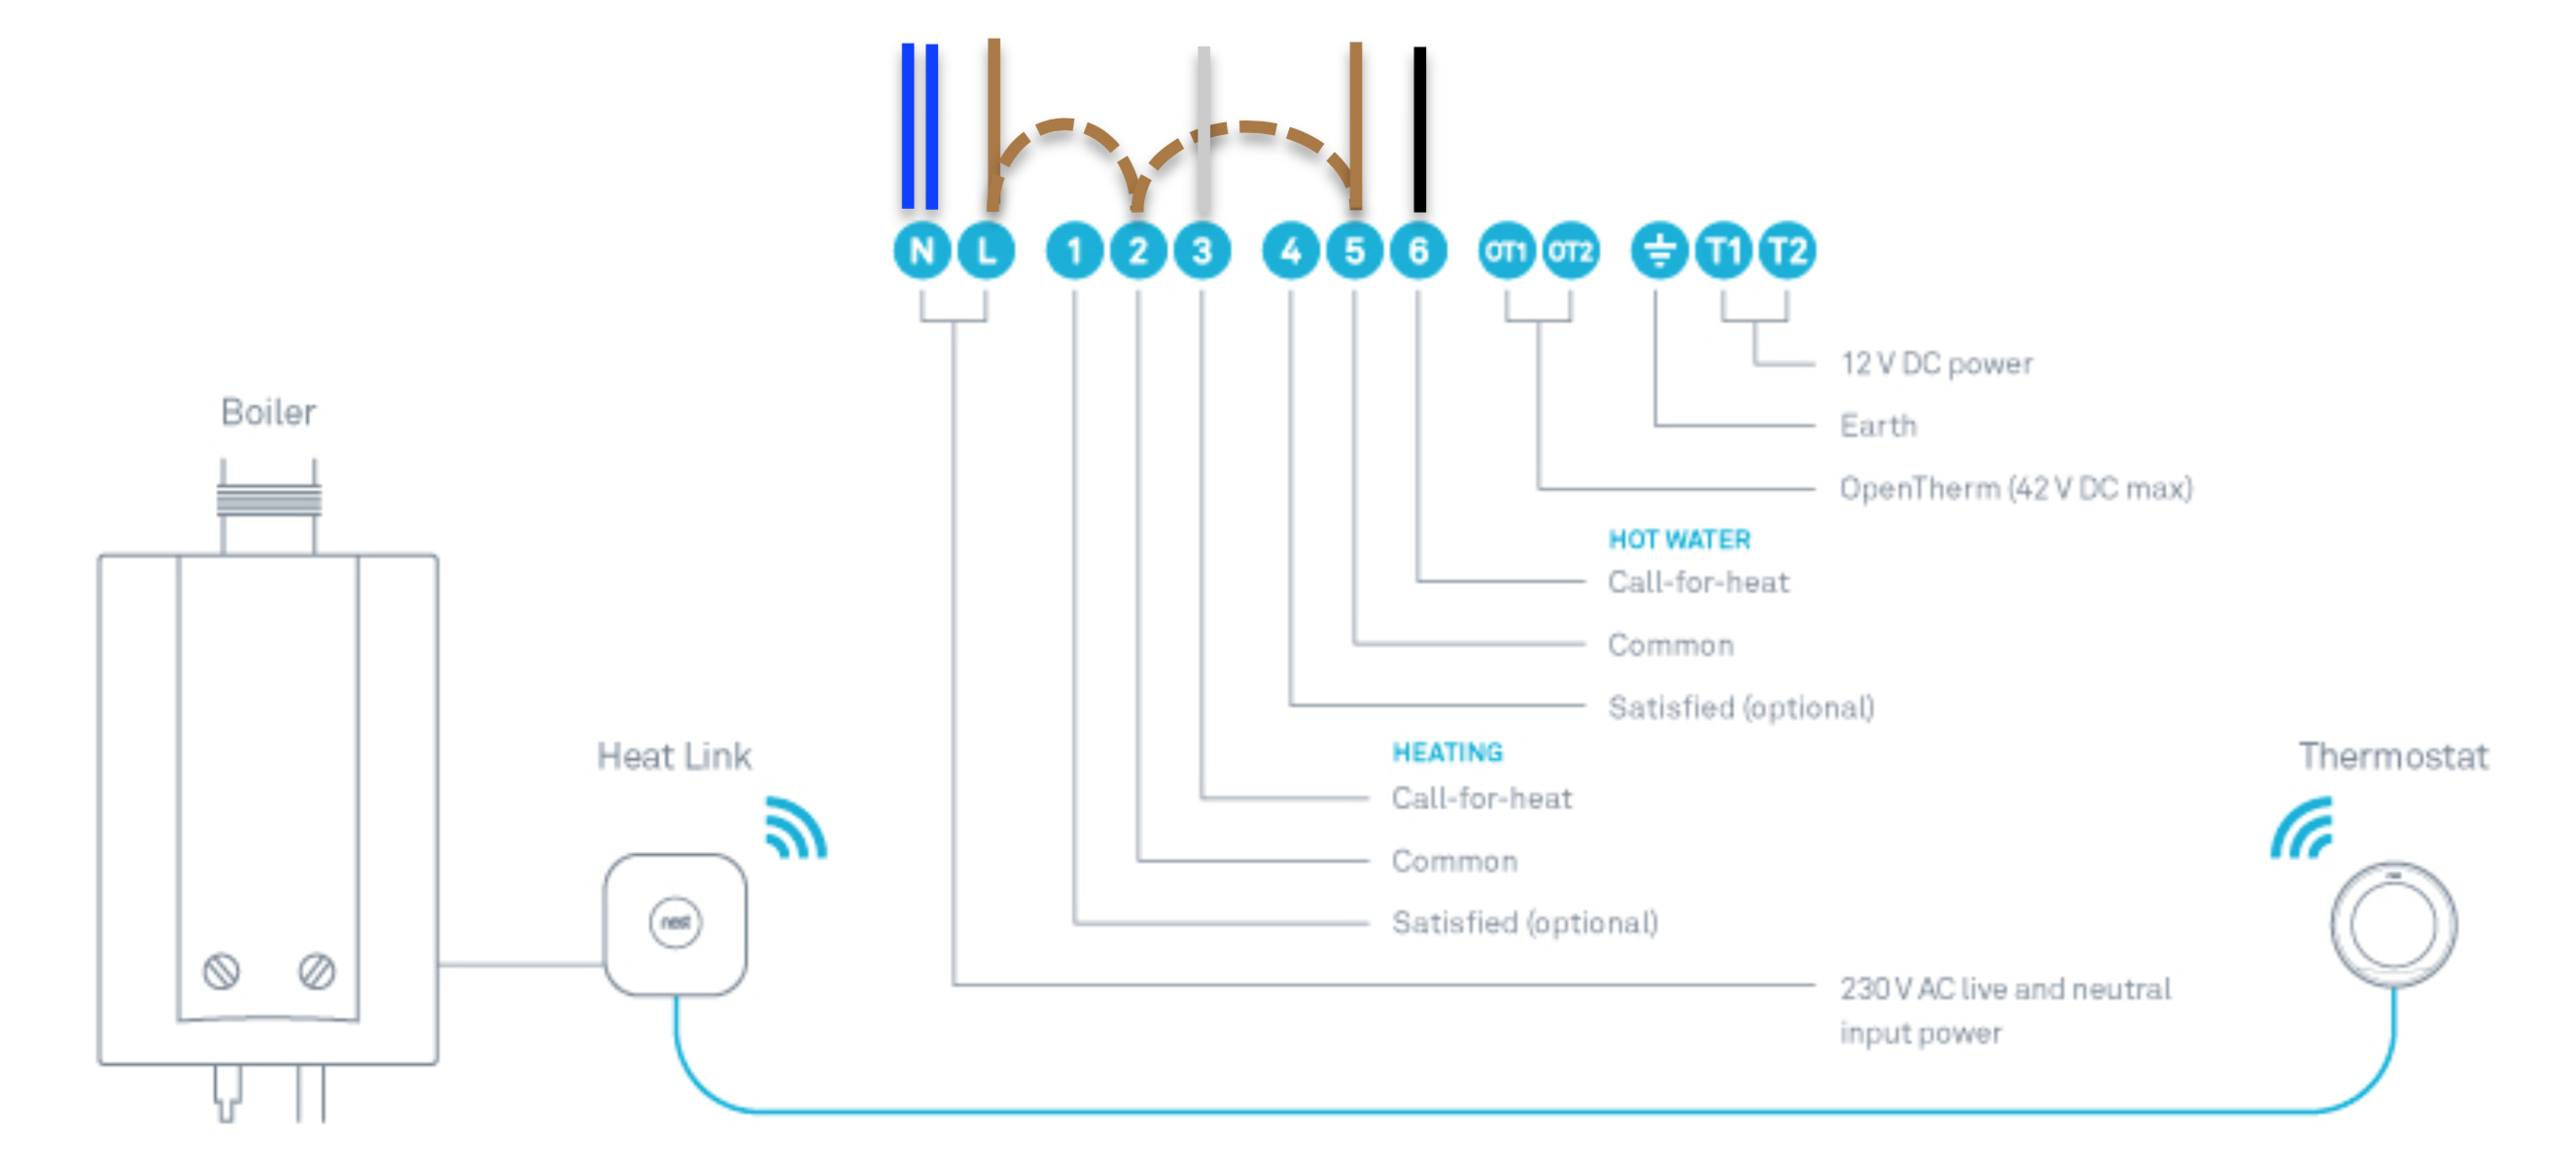 Nest Heat Link Wiring Diagram | Wiring Diagram - Nest Thermostat Gen 3 Wiring Diagram